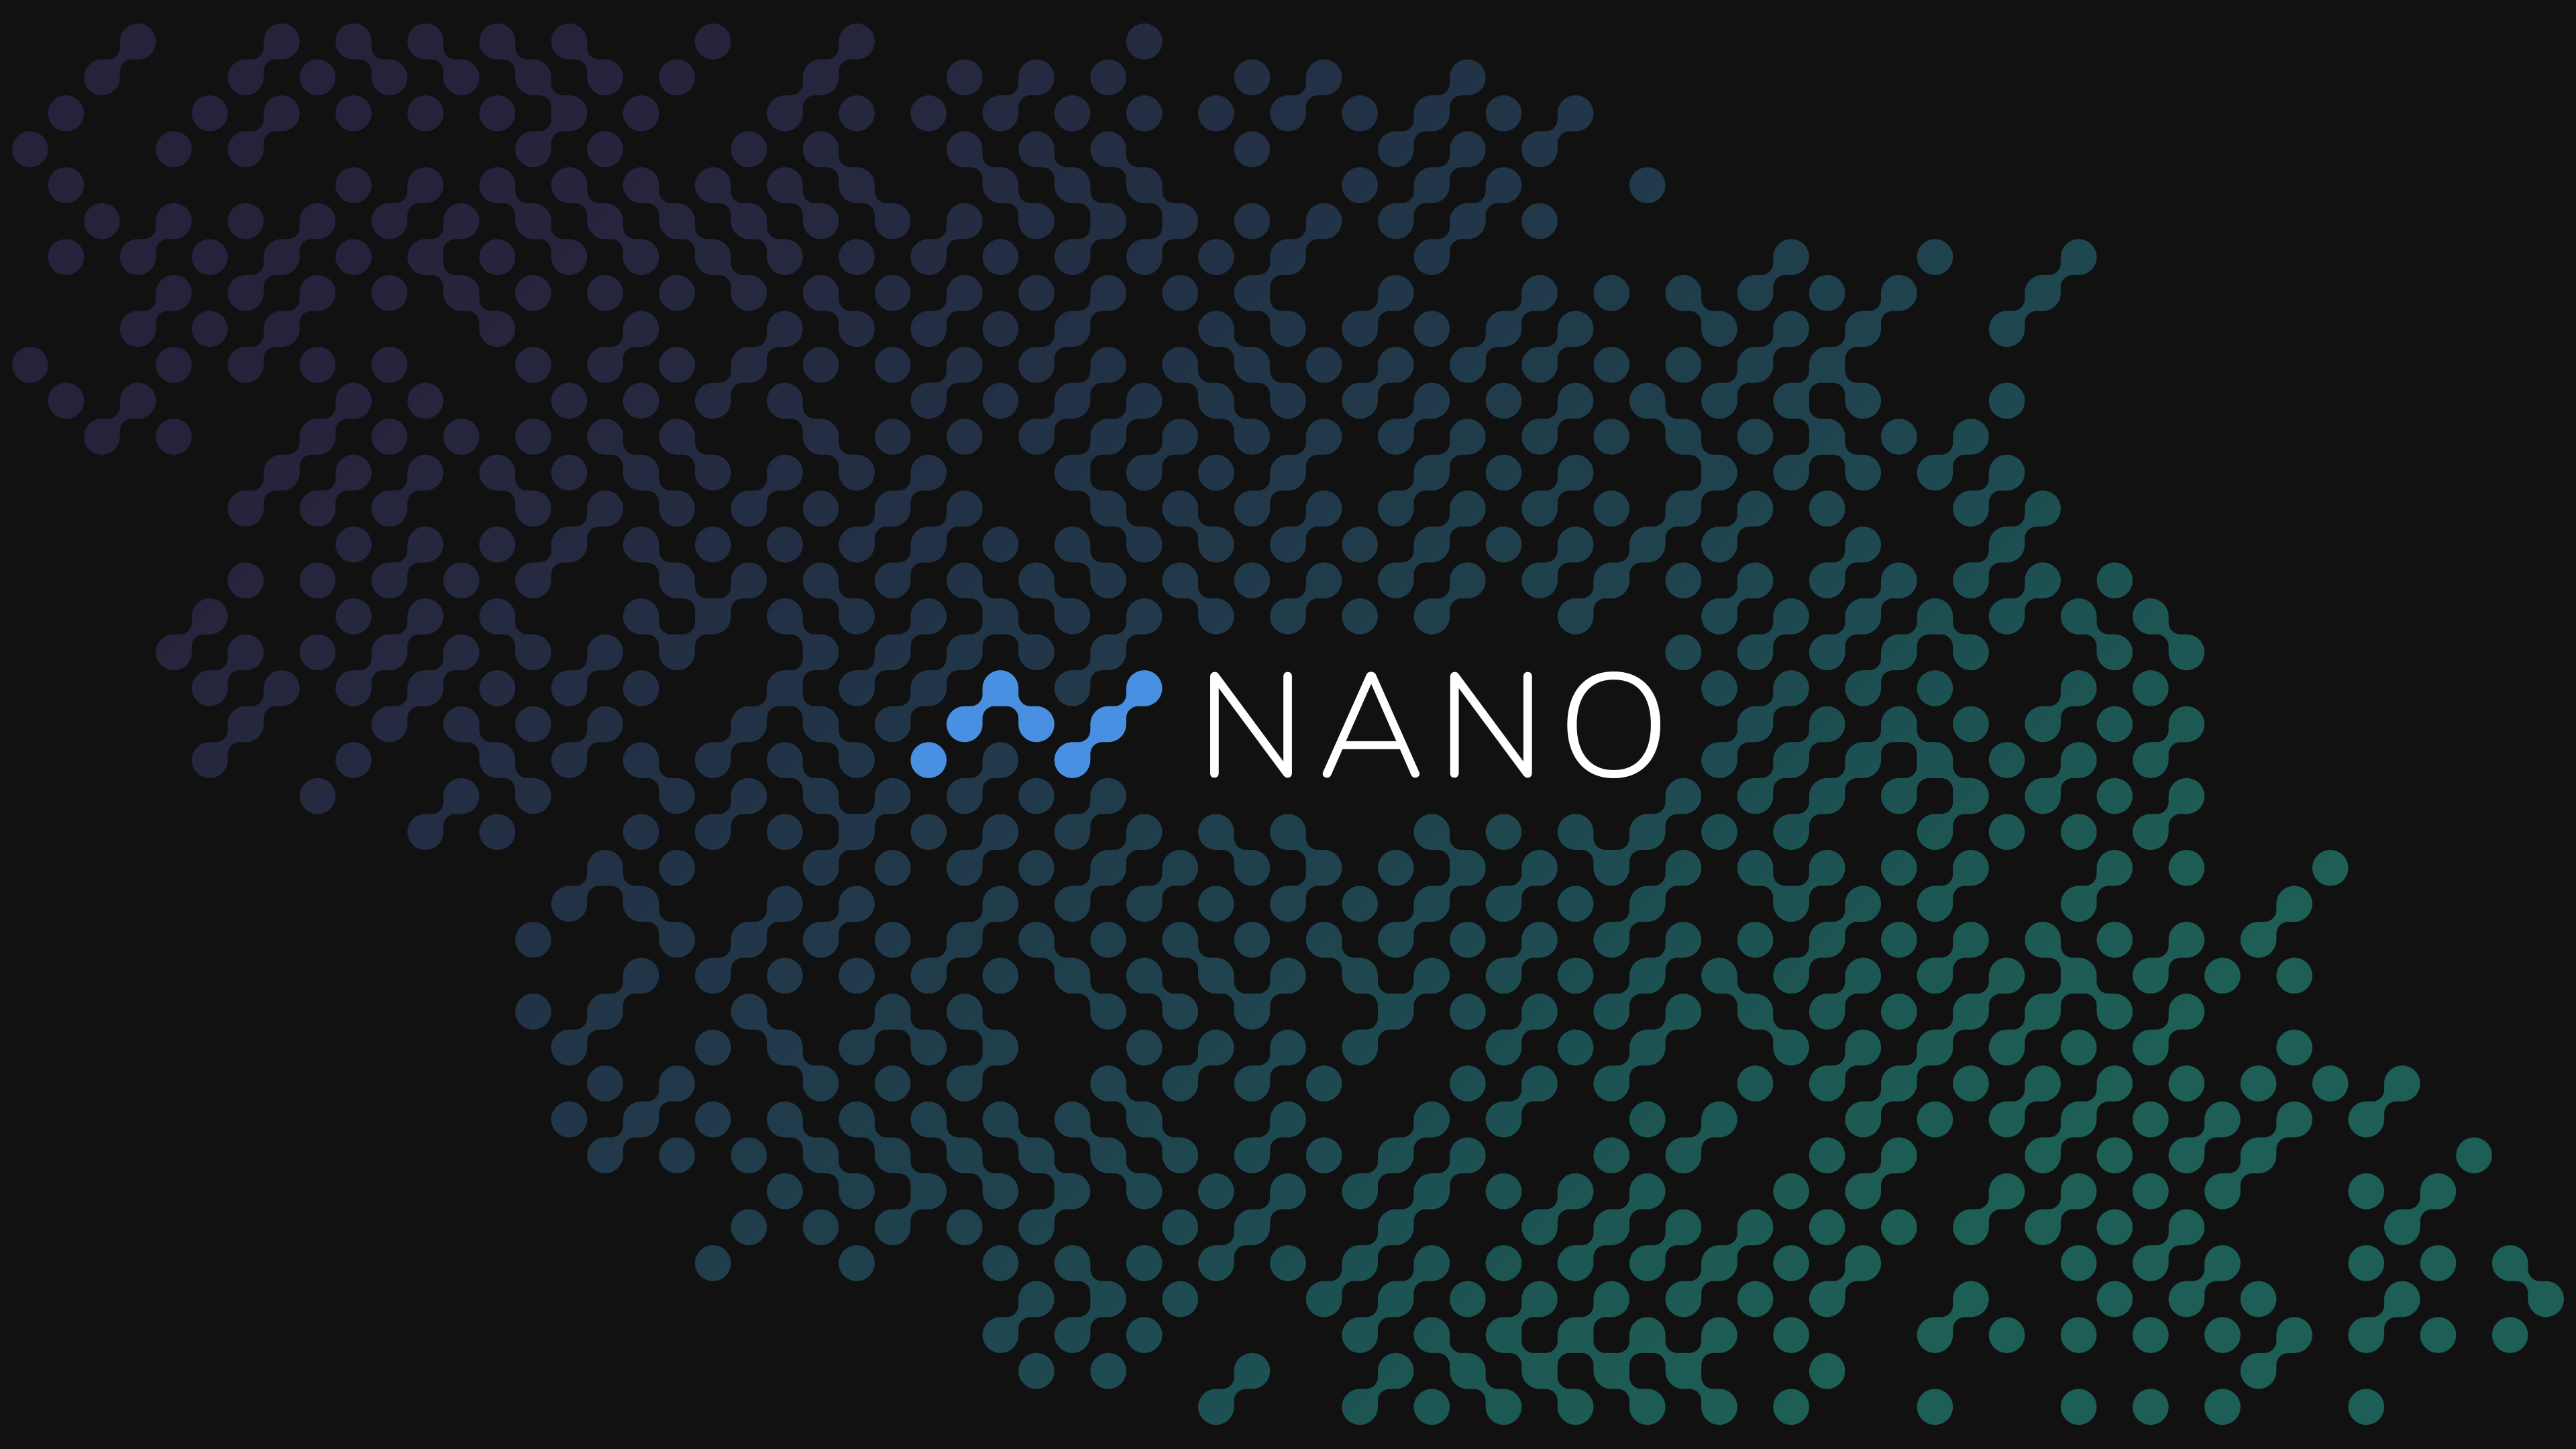 Nano 4k Dark Wallpaper   Album on Imgur 3840x2160